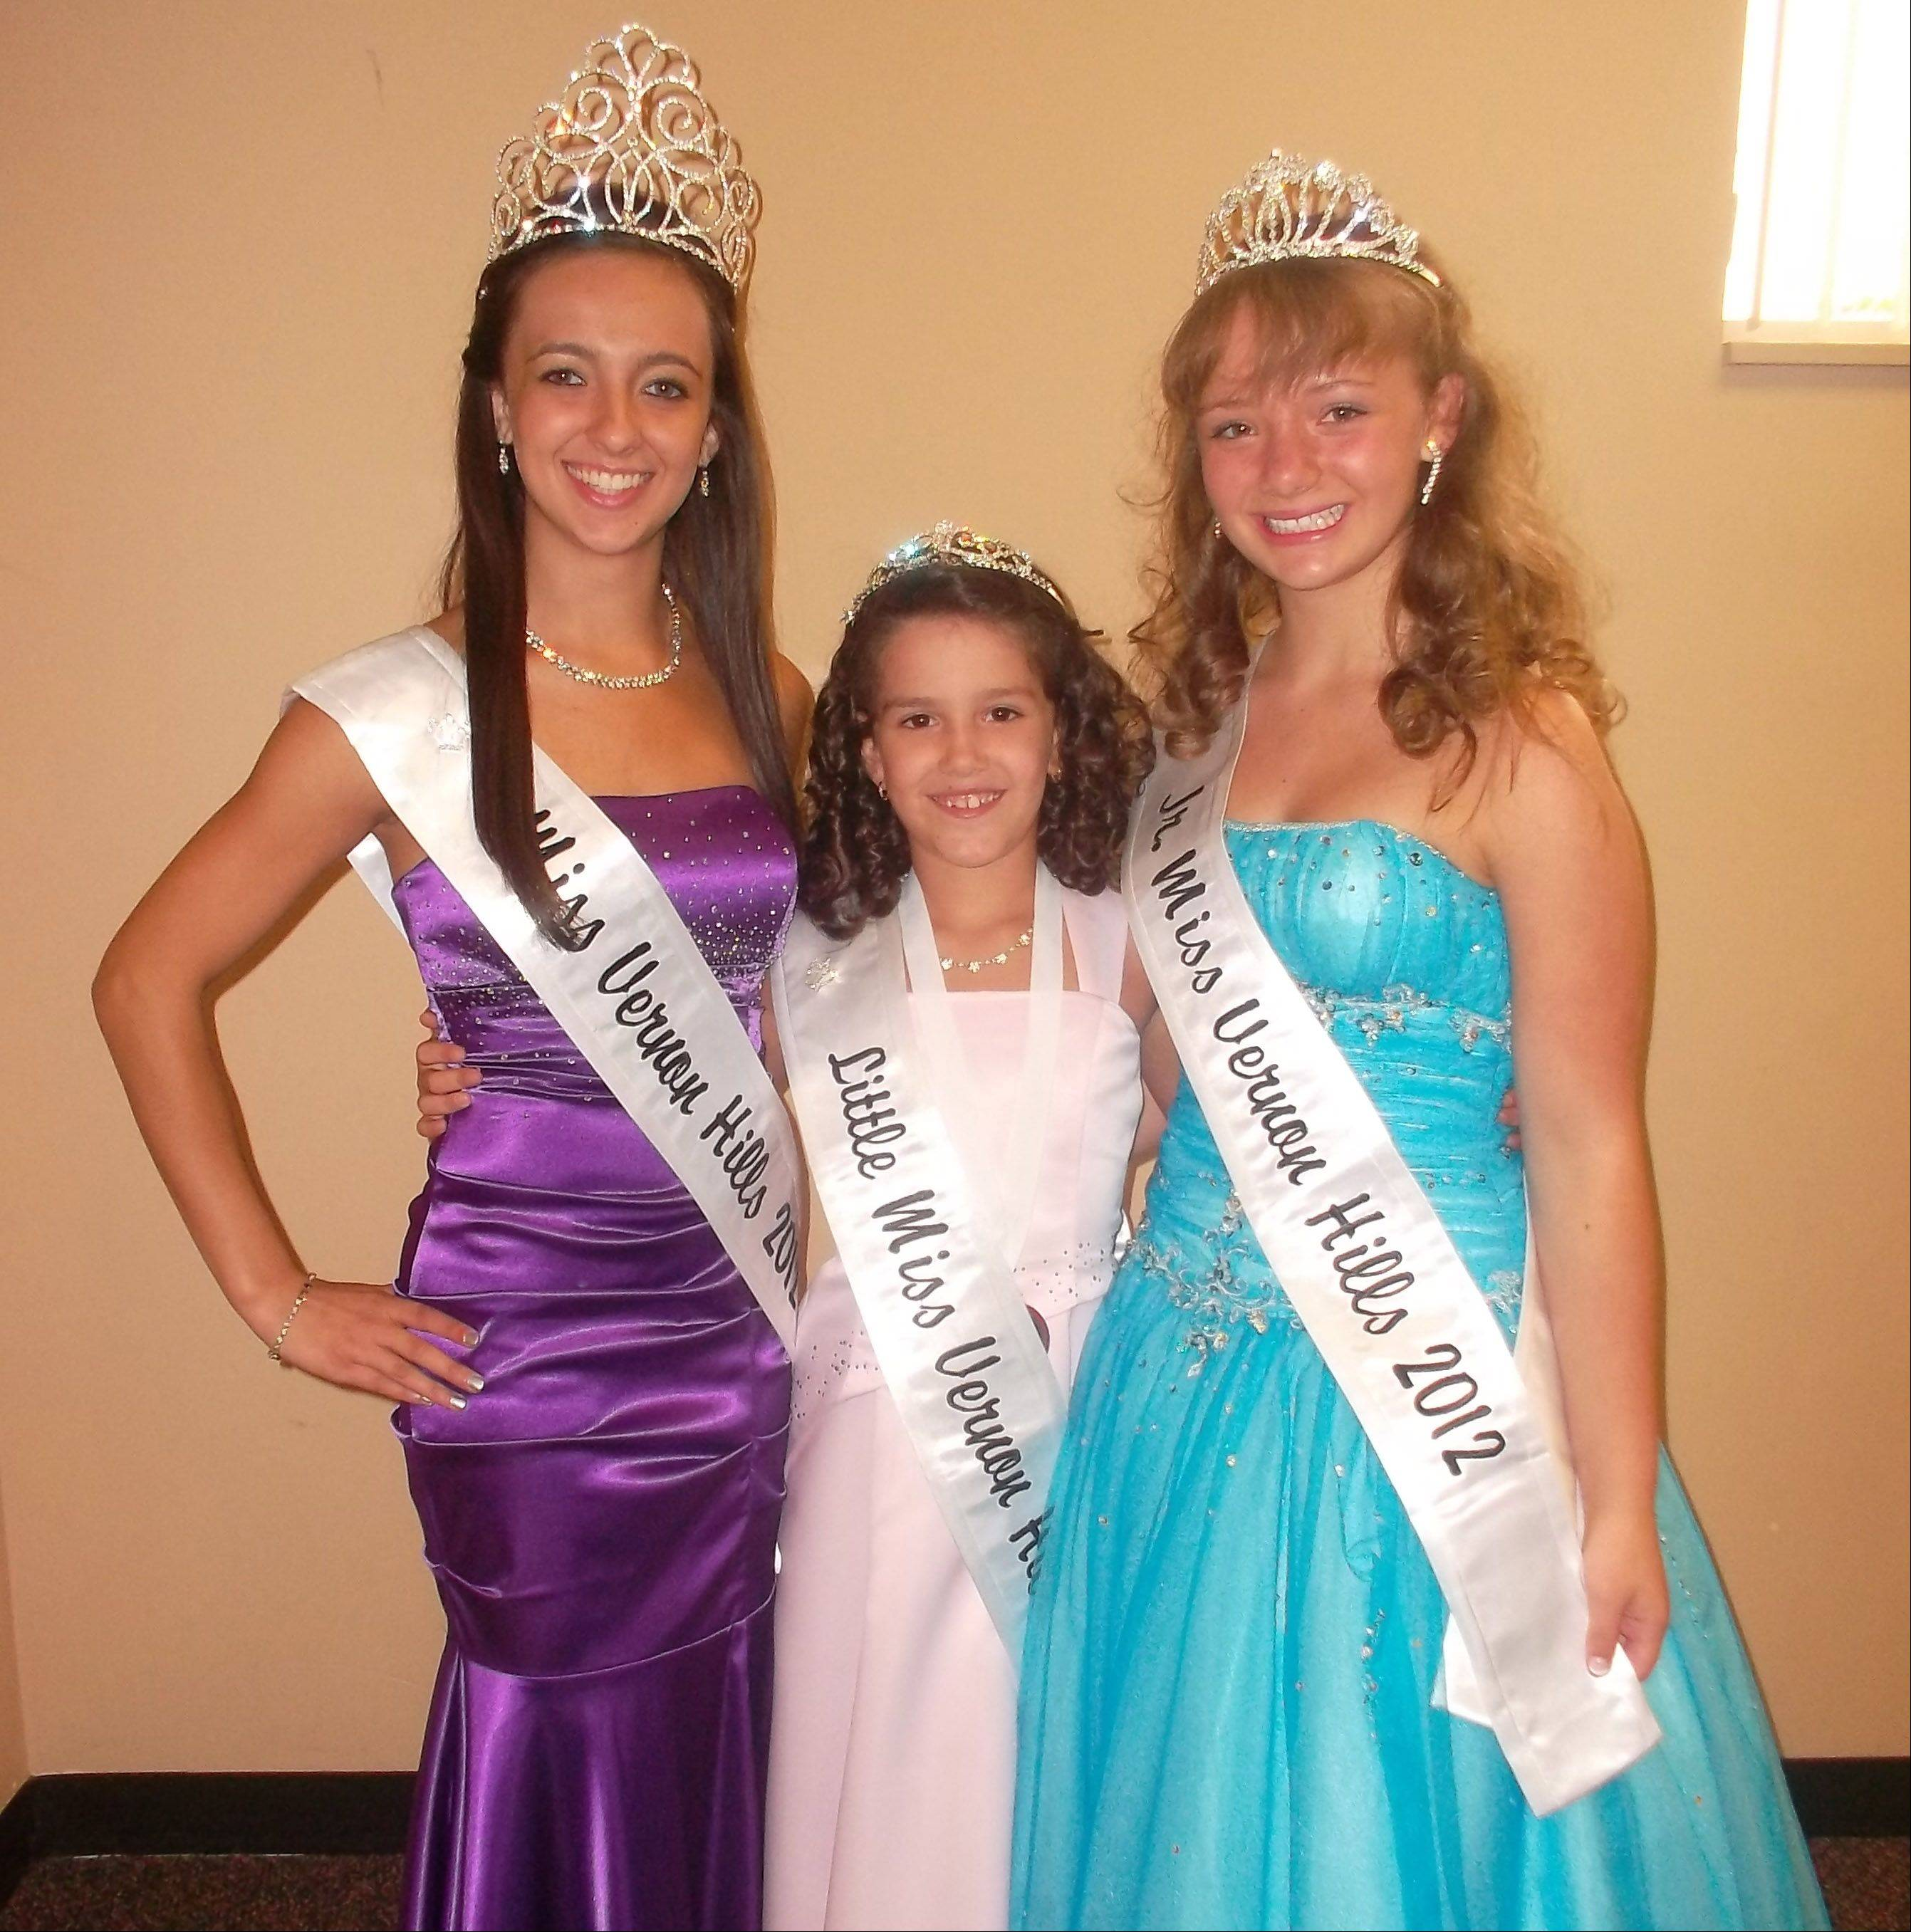 Miss Vernon Hills 2012 Natalie Chiarello, 17, a senior at Vernon Hills High School, from left, Little Miss Vernon Hills 2012 Valerie Burda, 9, a fourth-grader at Hawthorn Elementary School, and Junior Miss Vernon Hills 2012 Brianna Bolotin, 12, a seventh-grader at Hawthorn Middle School North.